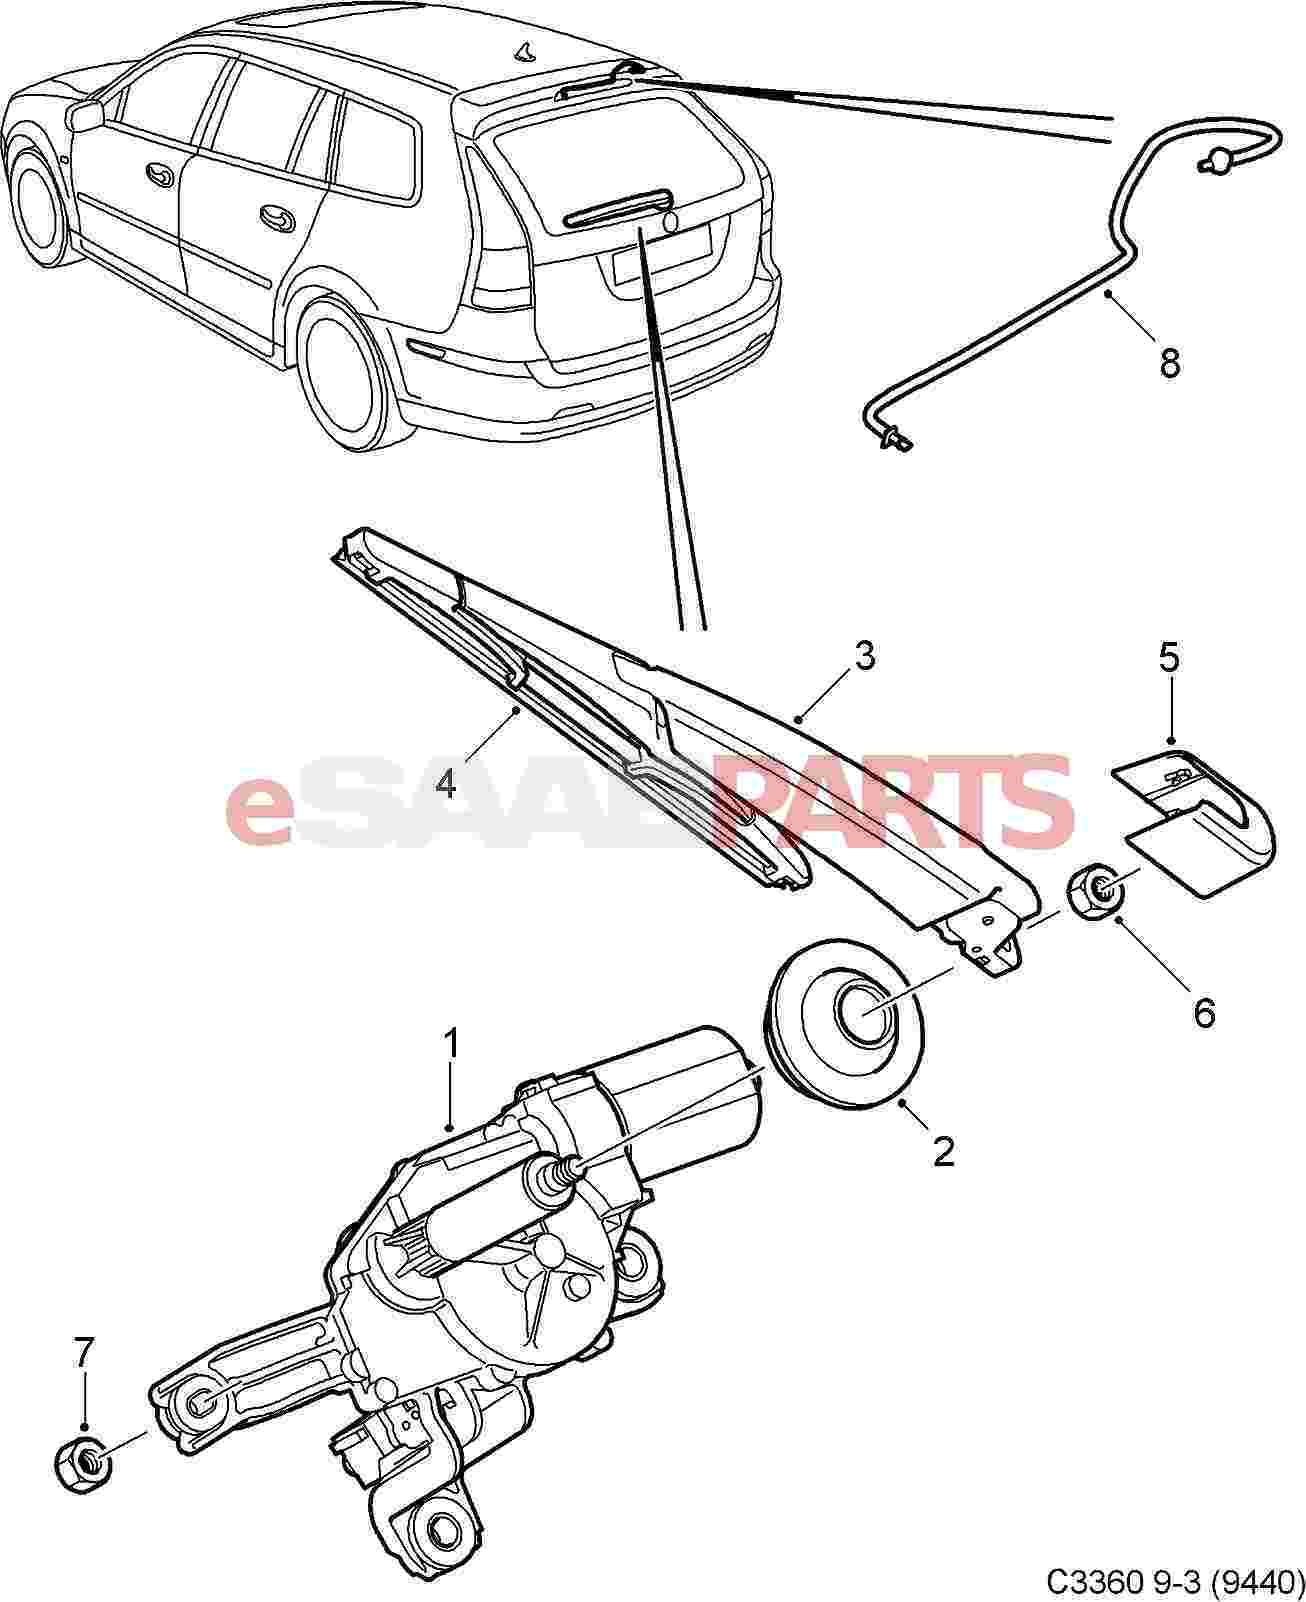 Saab Windshield Washer Wiring Diagram Com